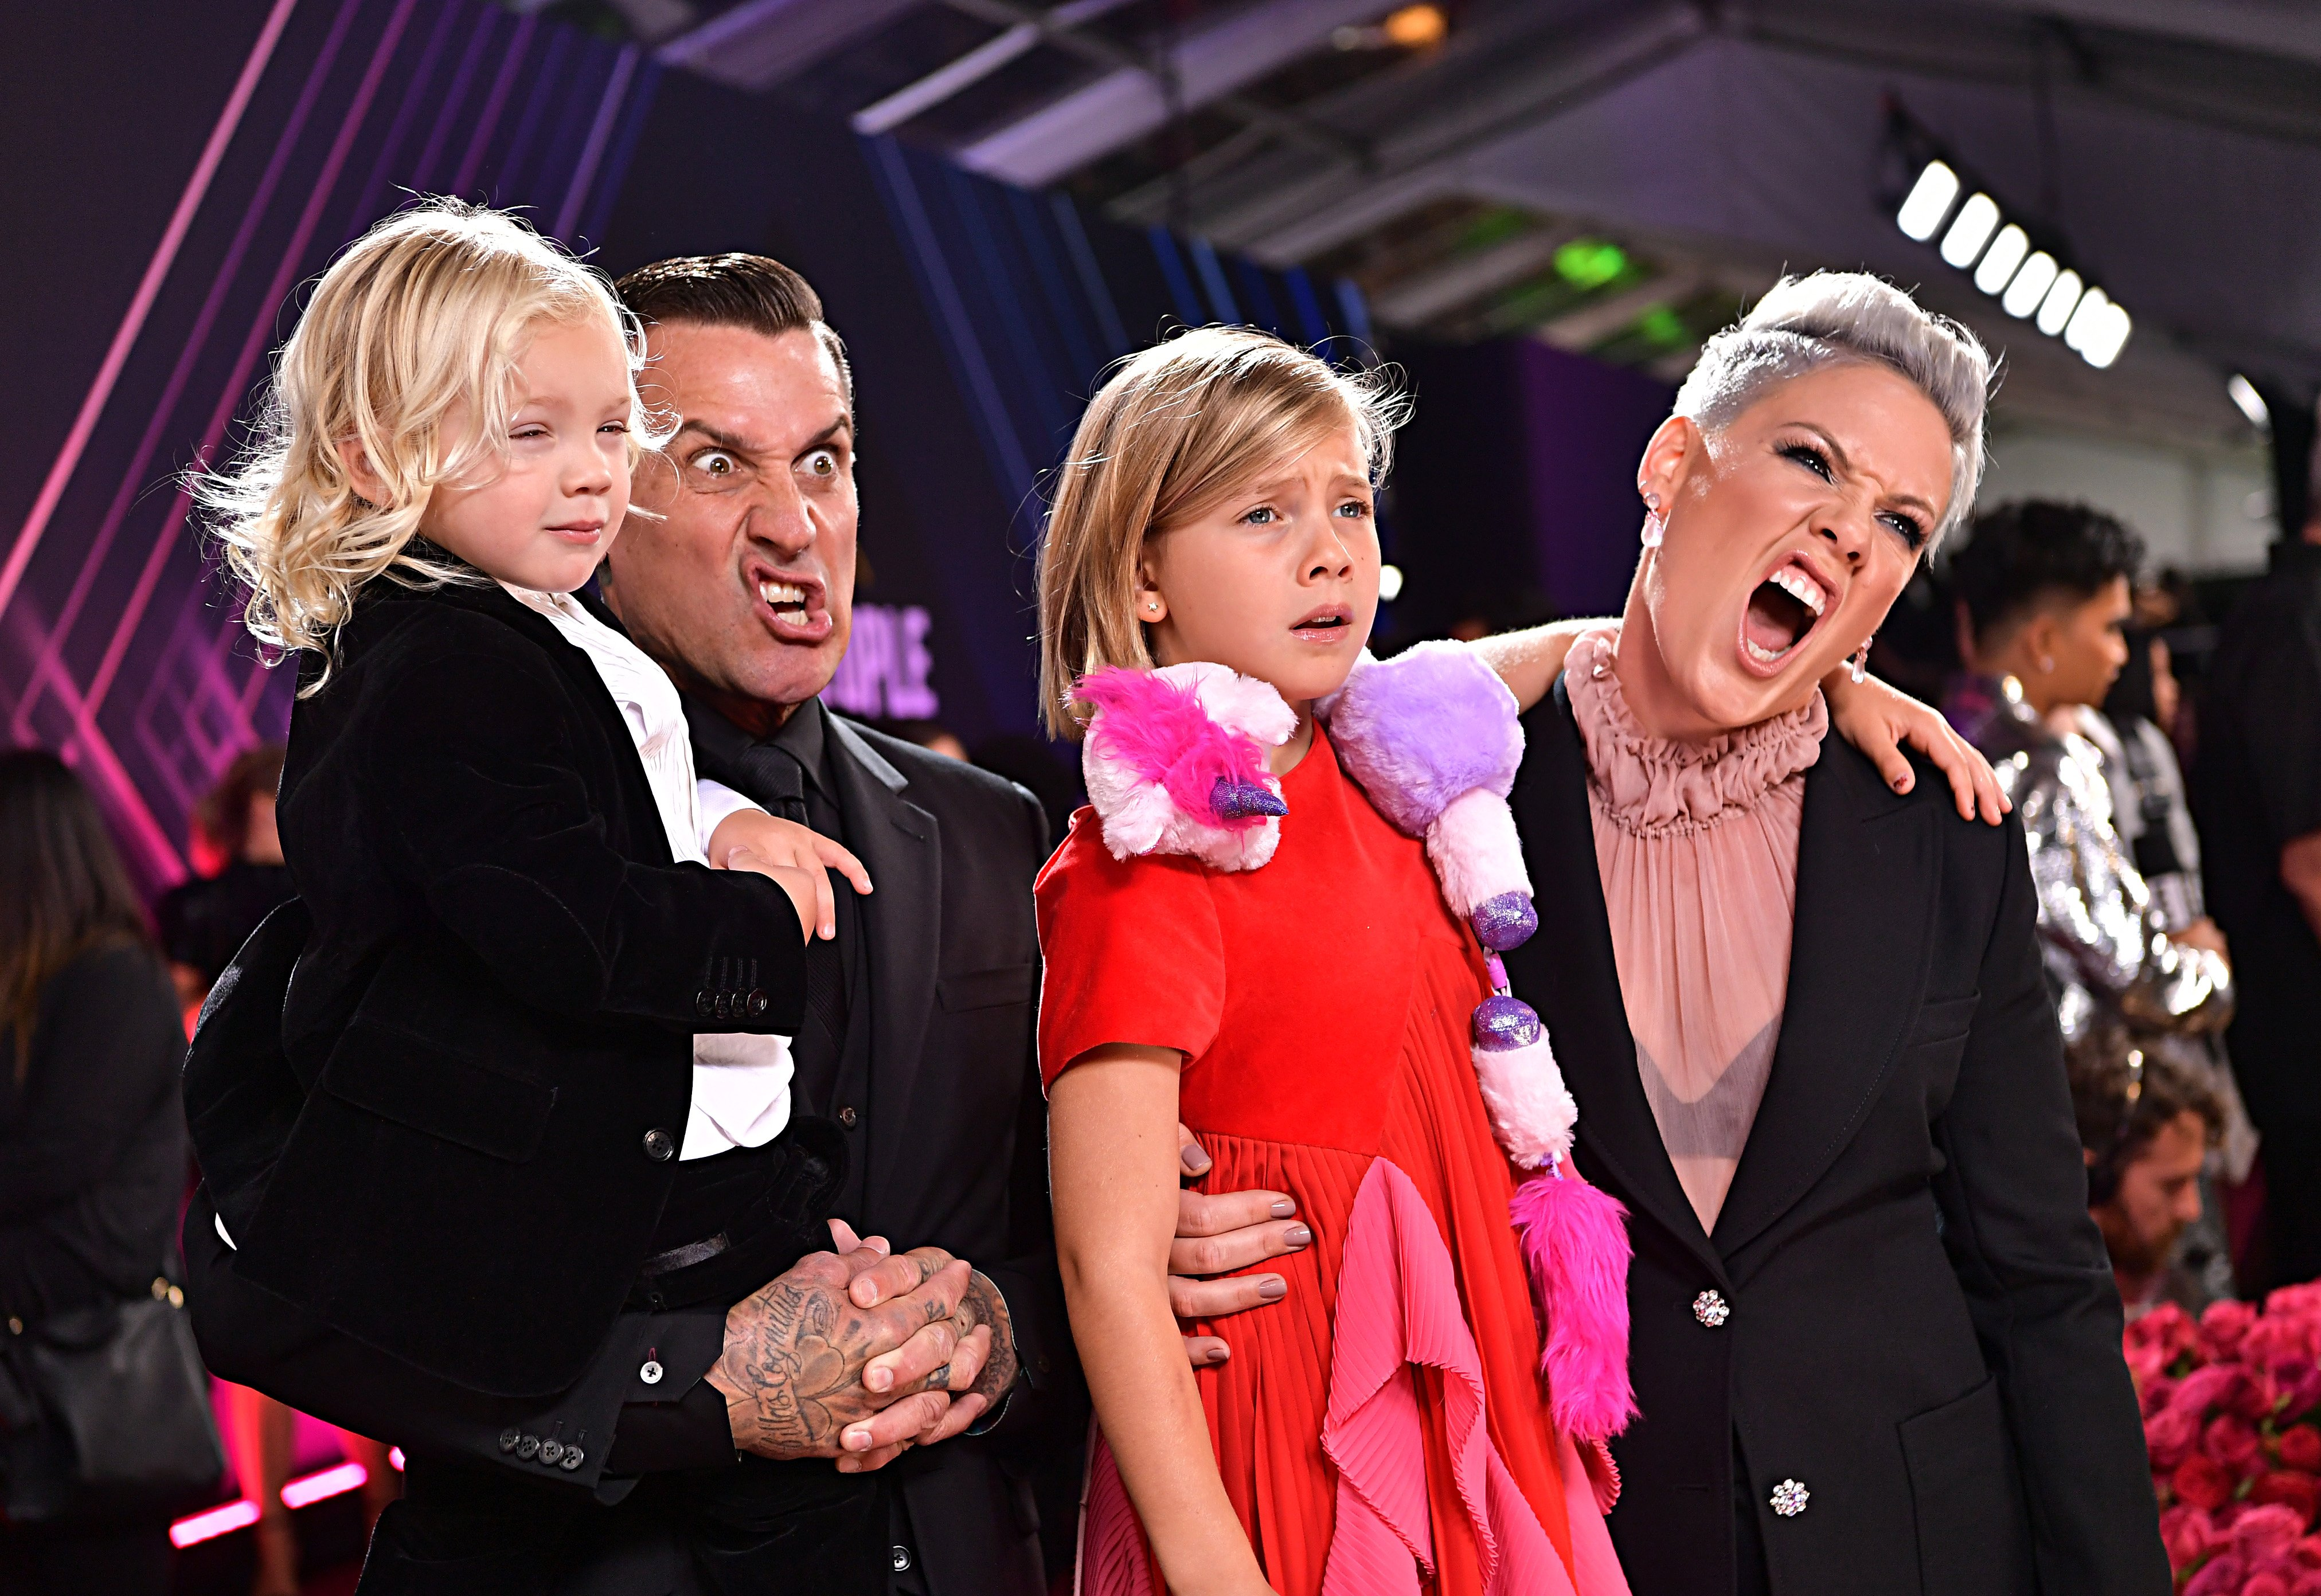 Carey Hart and Pink with theirs kids, Jameson and Willow, during the 2019 E! People's Choice Awards at the Barker Hangar on November 10, 2019. | Source: Getty Images